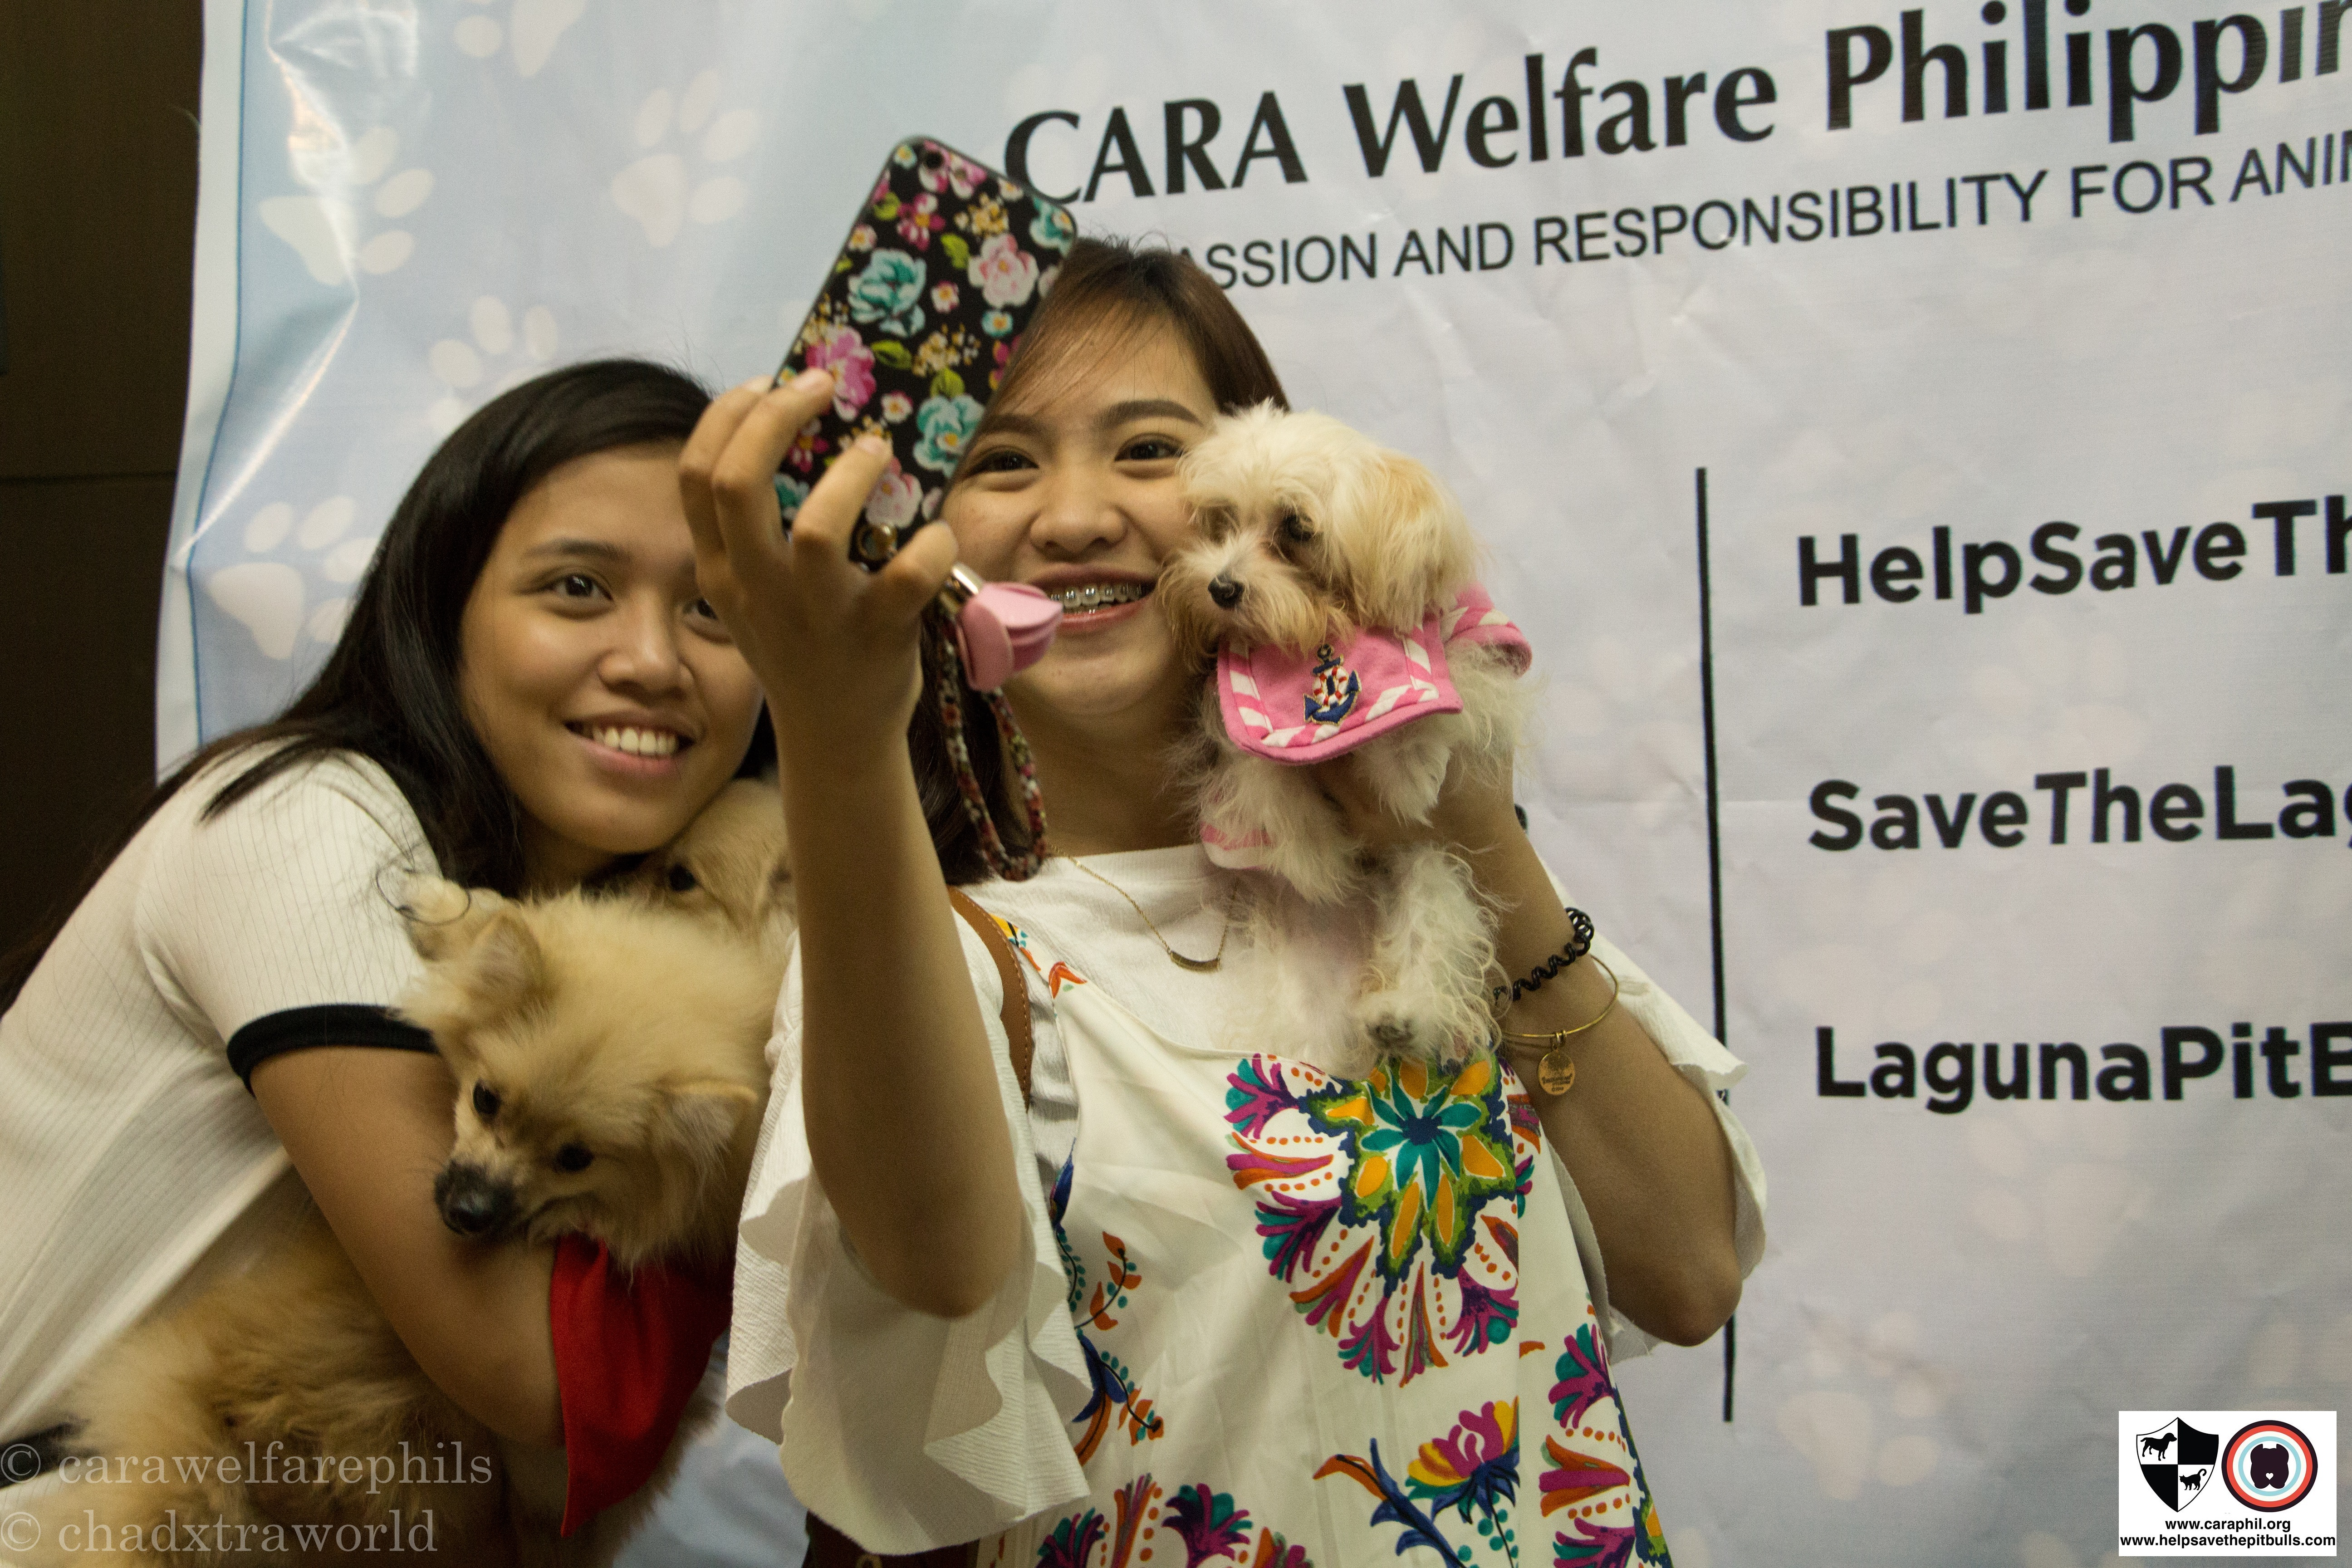 Selfies with Pets, Discounts, and More Fun Activities at the Cat and Dog Expo 2017!